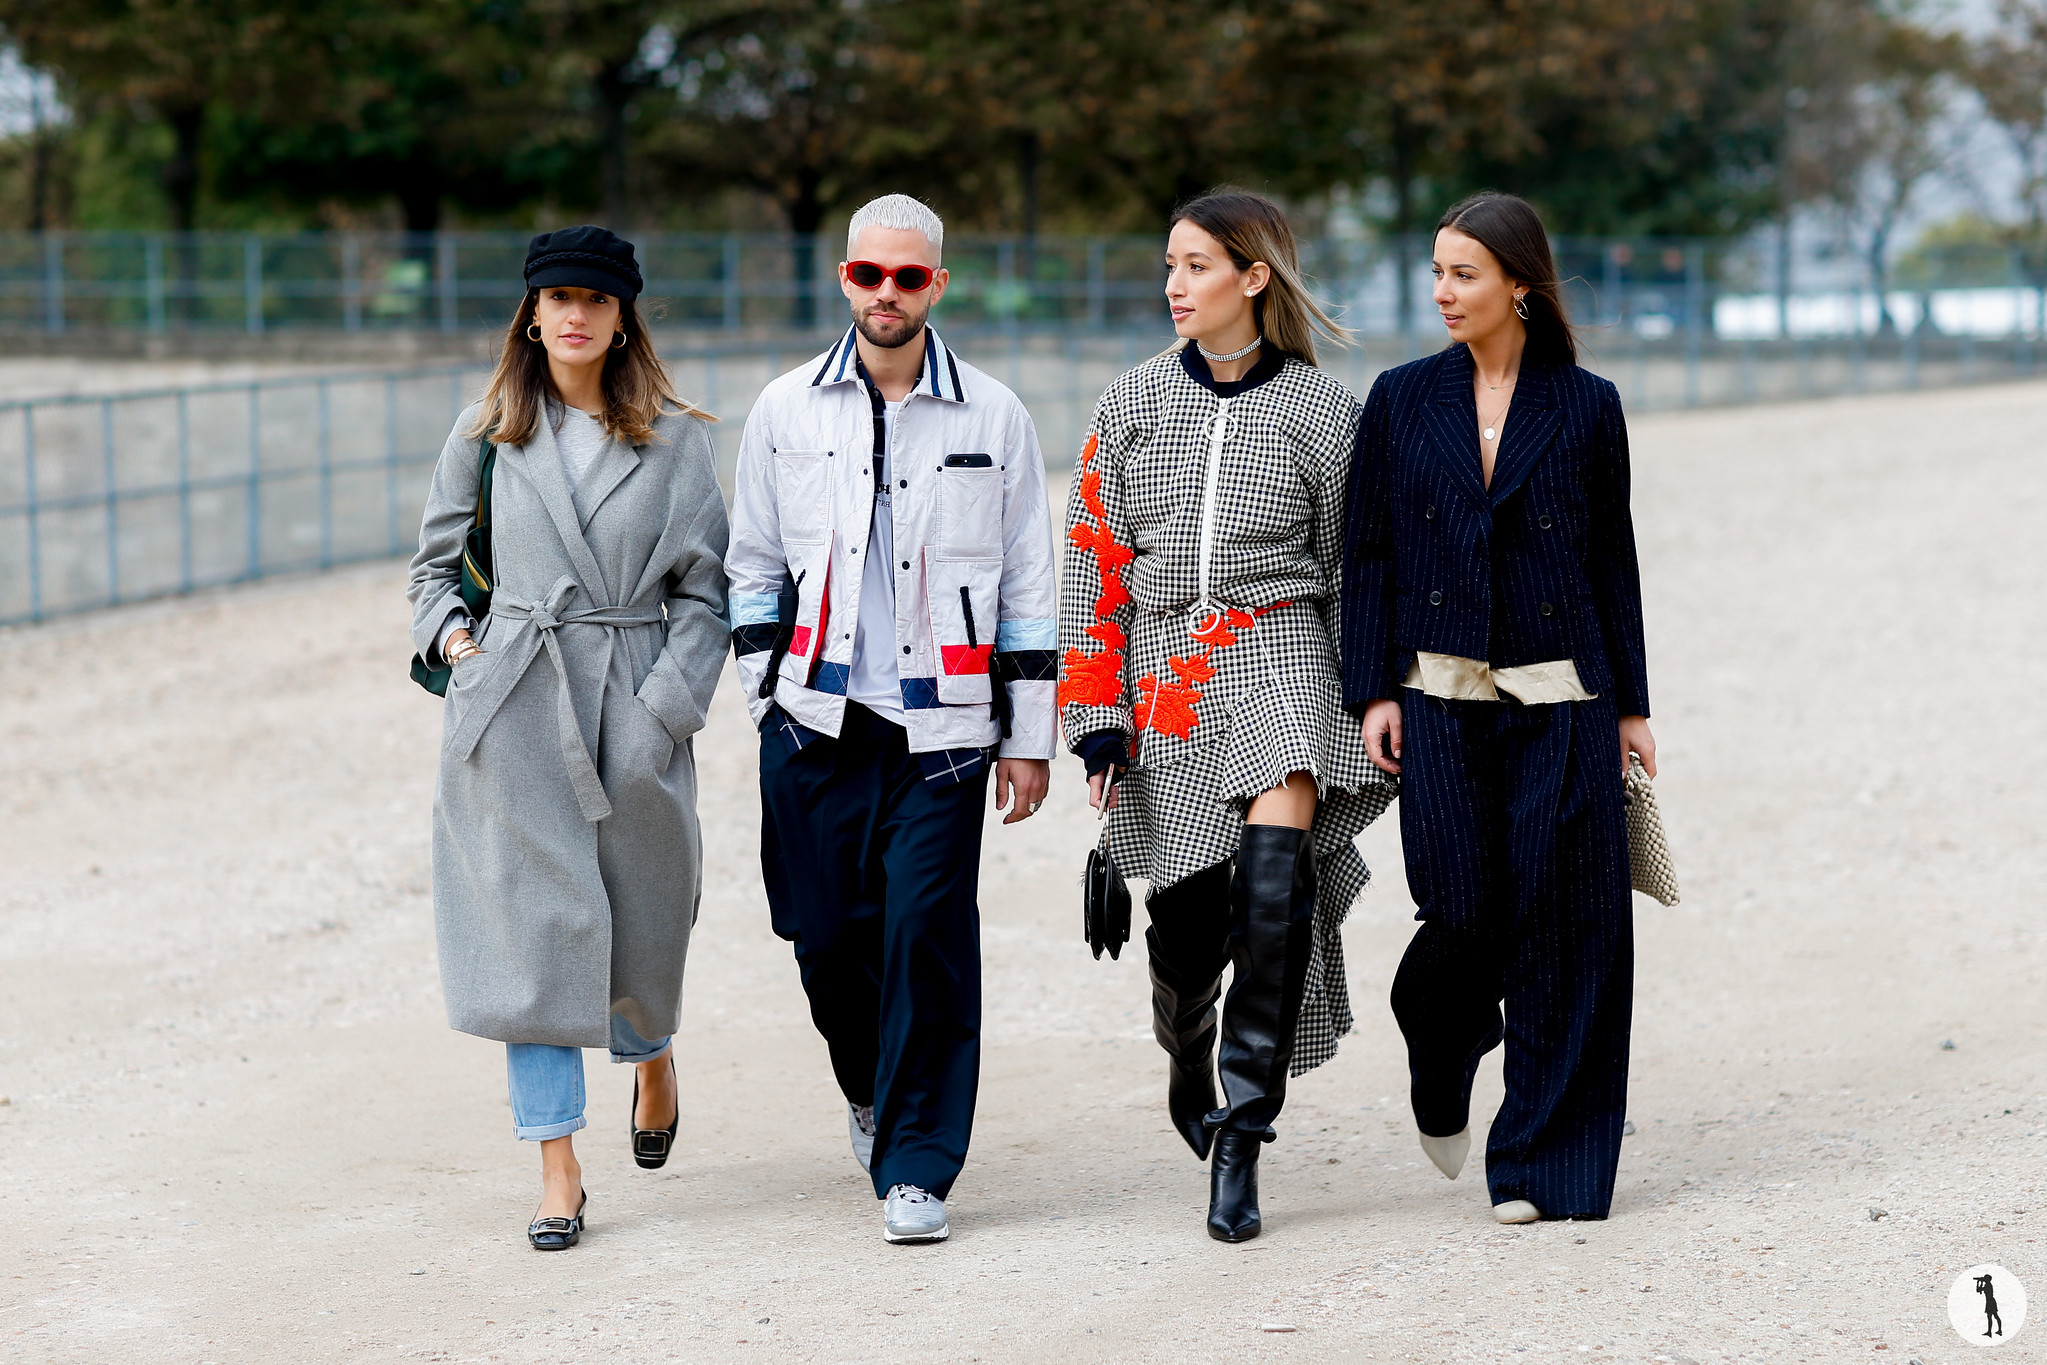 Kenza Sadoun el Glaoui, Js and Alice Jaimetoutcheztoi, Alex Closet - Paris Fashion Week SS18 (1)